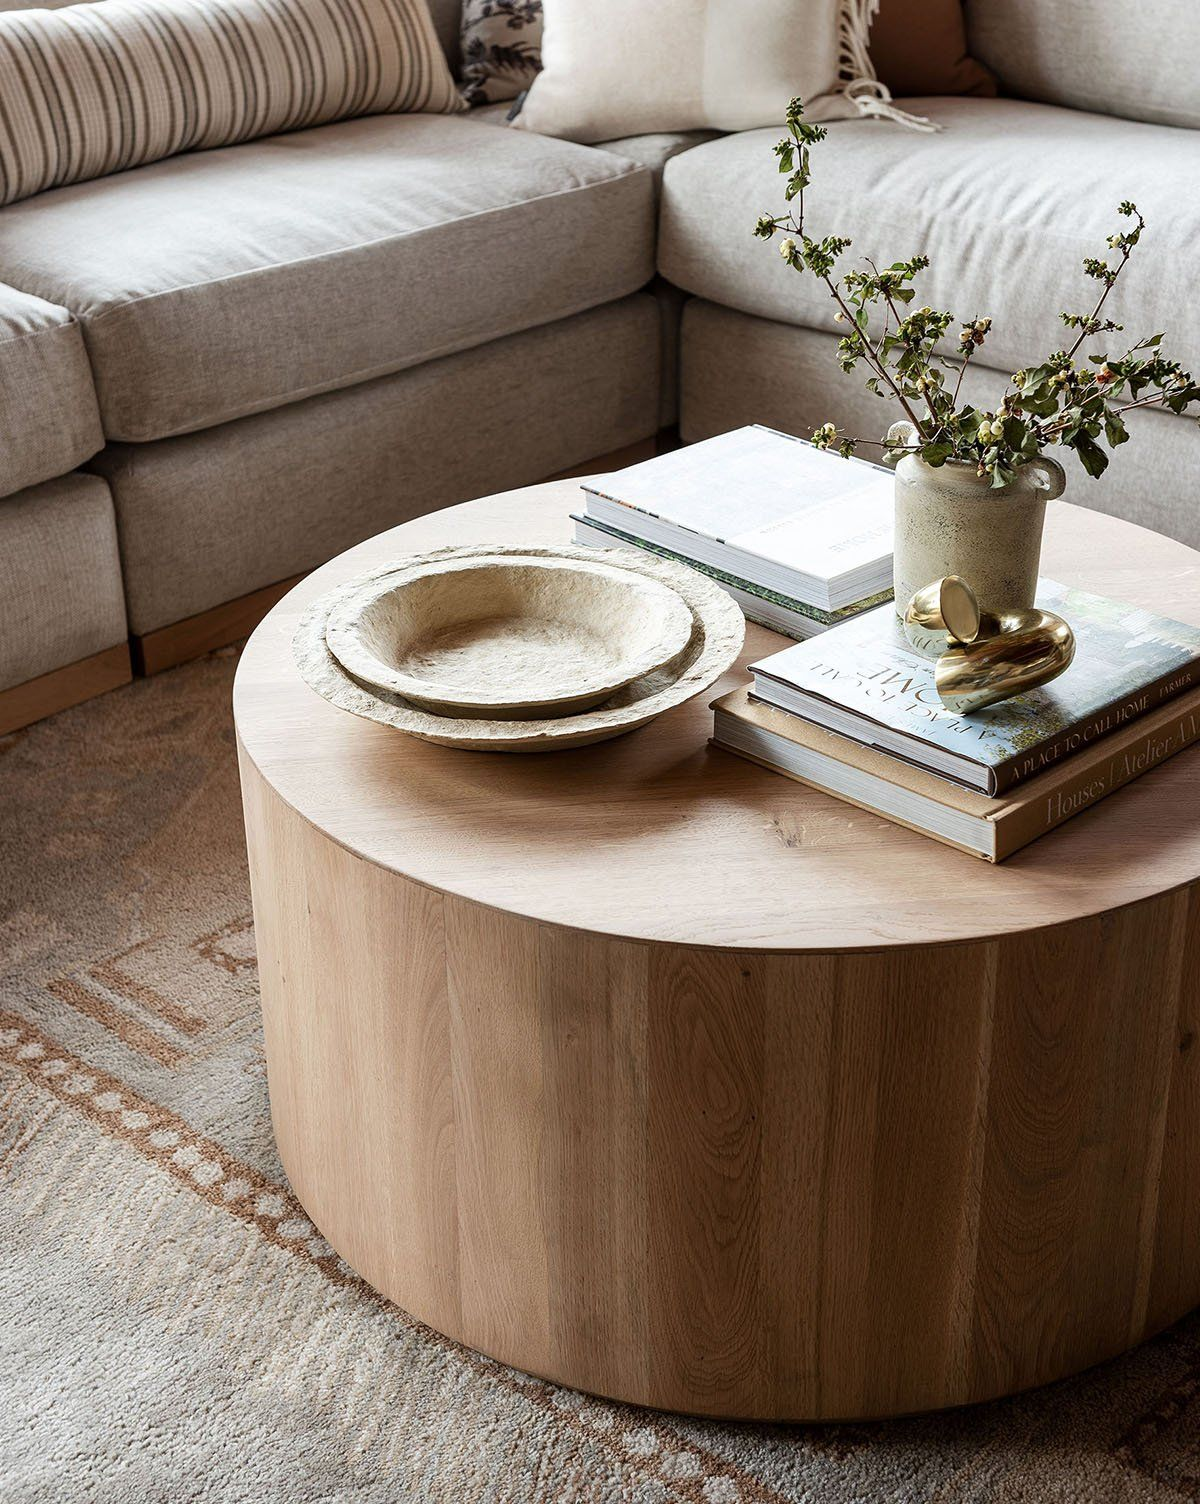 Houses Atelier Am In 2021 Table Decor Living Room Coffee Table Living Room Coffee Table [ jpg ]